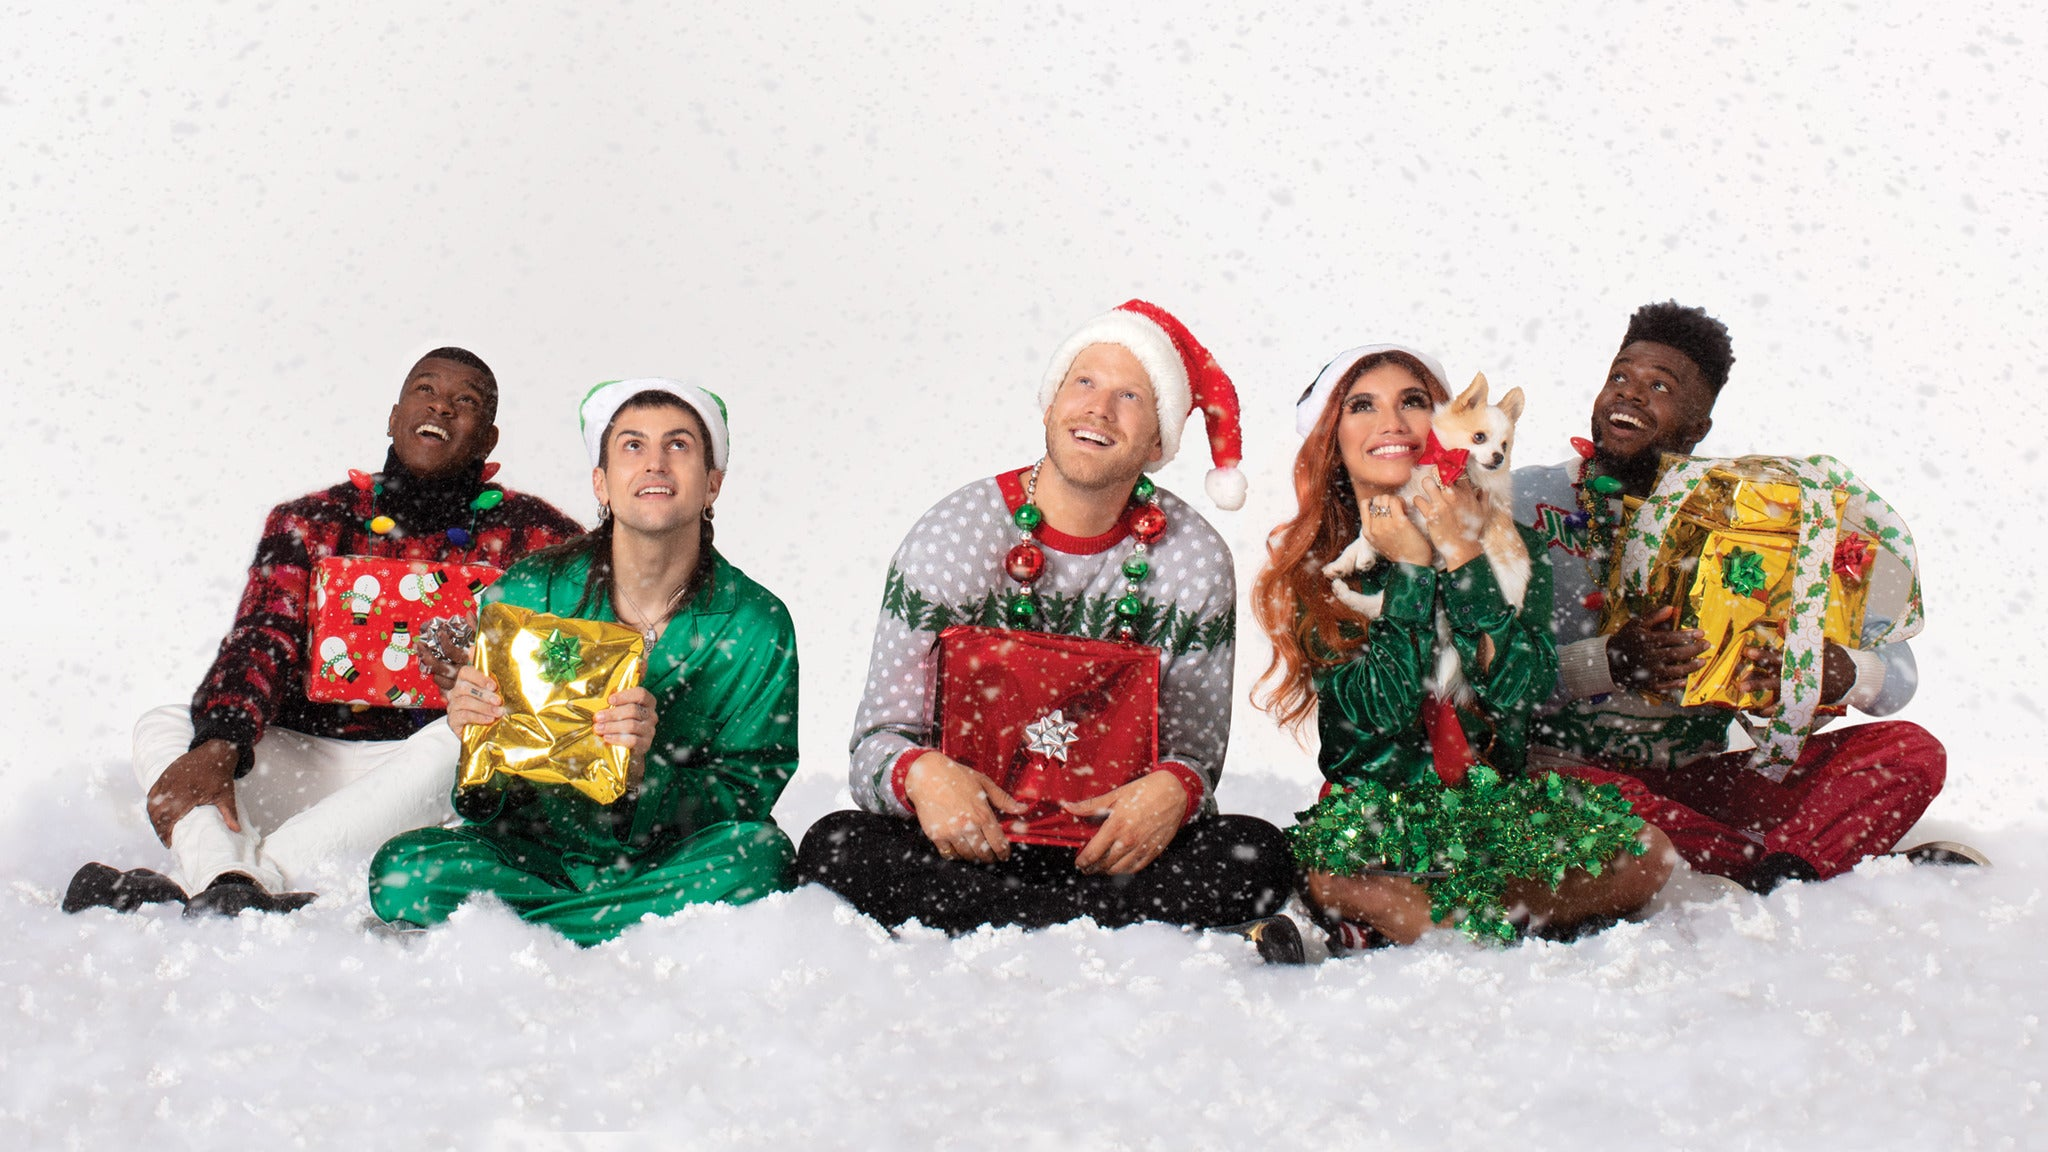 Ptx Christmas Special 2020 Pentatonix Tickets, 2020 2021 Concert Tour Dates | Ticketmaster